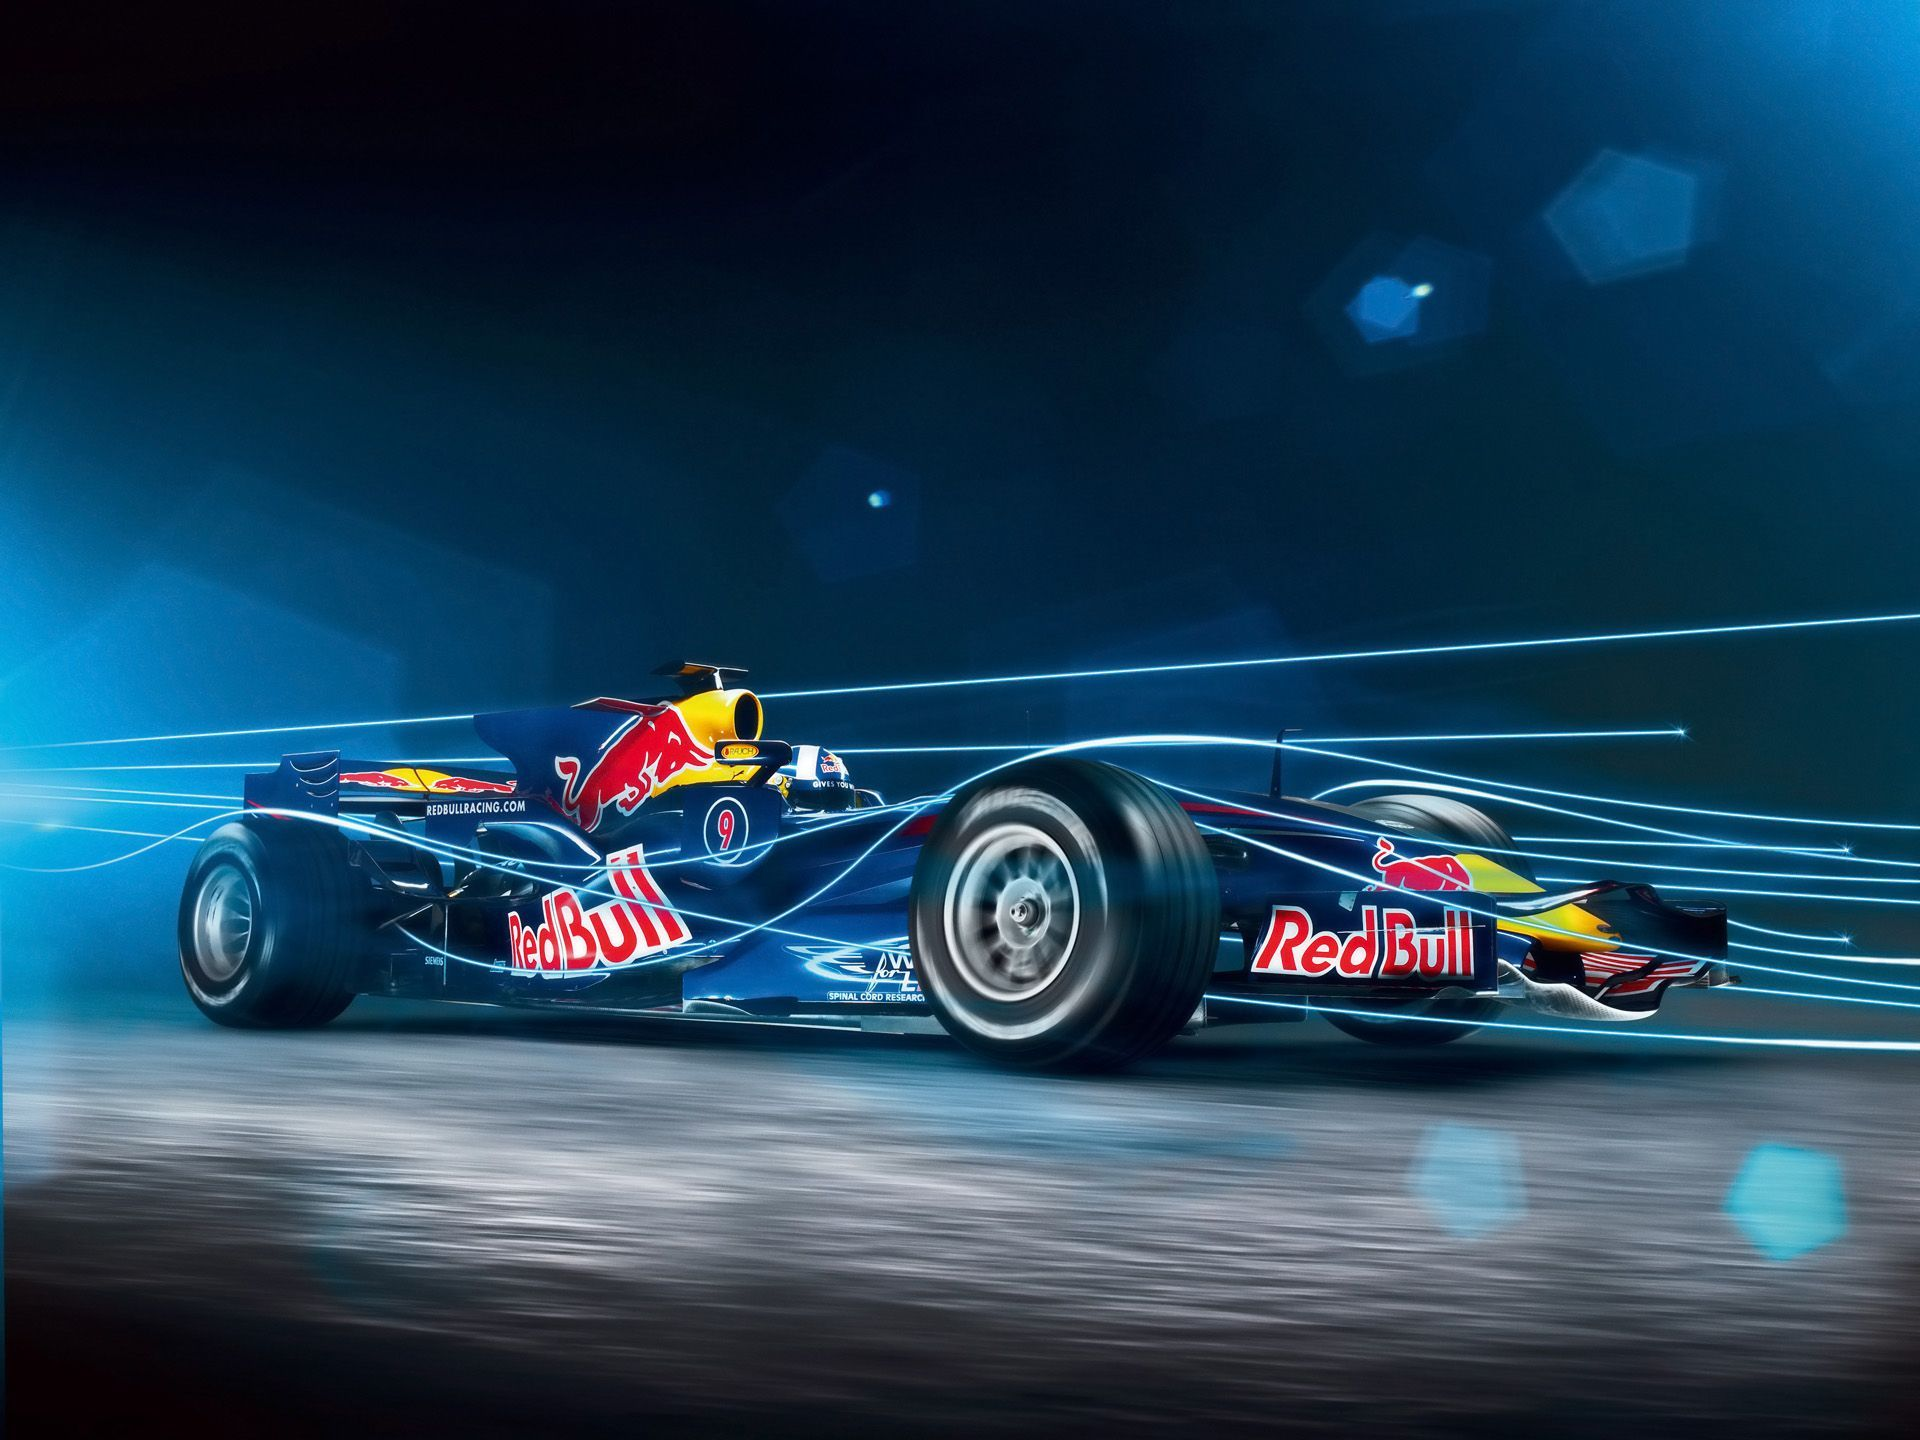 F1 Racing Wallpapers Top Free F1 Racing Backgrounds Wallpaperaccess